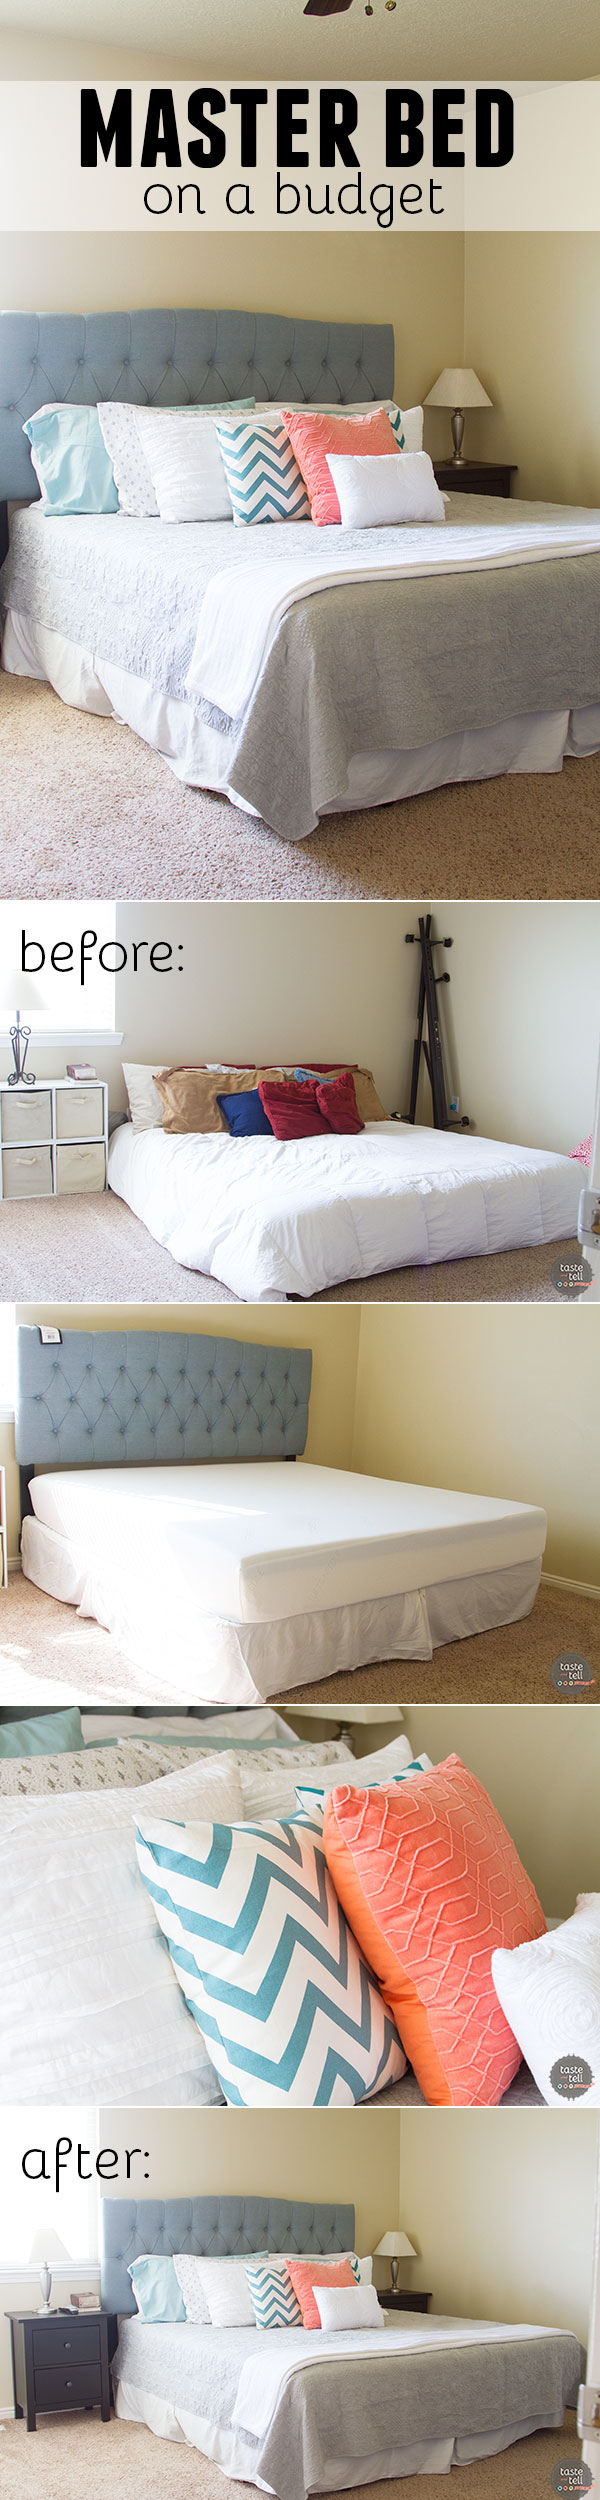 It is possible to do a full master bed on a budget!